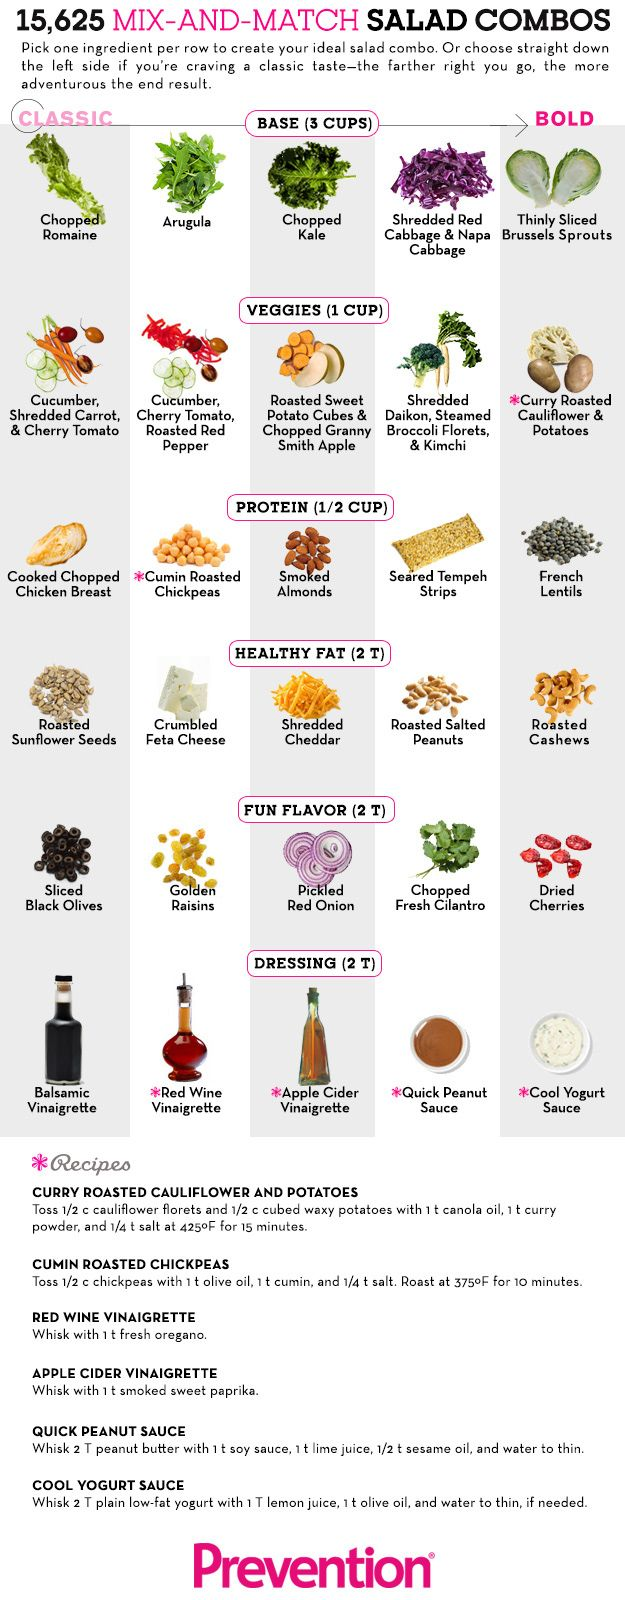 Make salad exciting again with this chart.